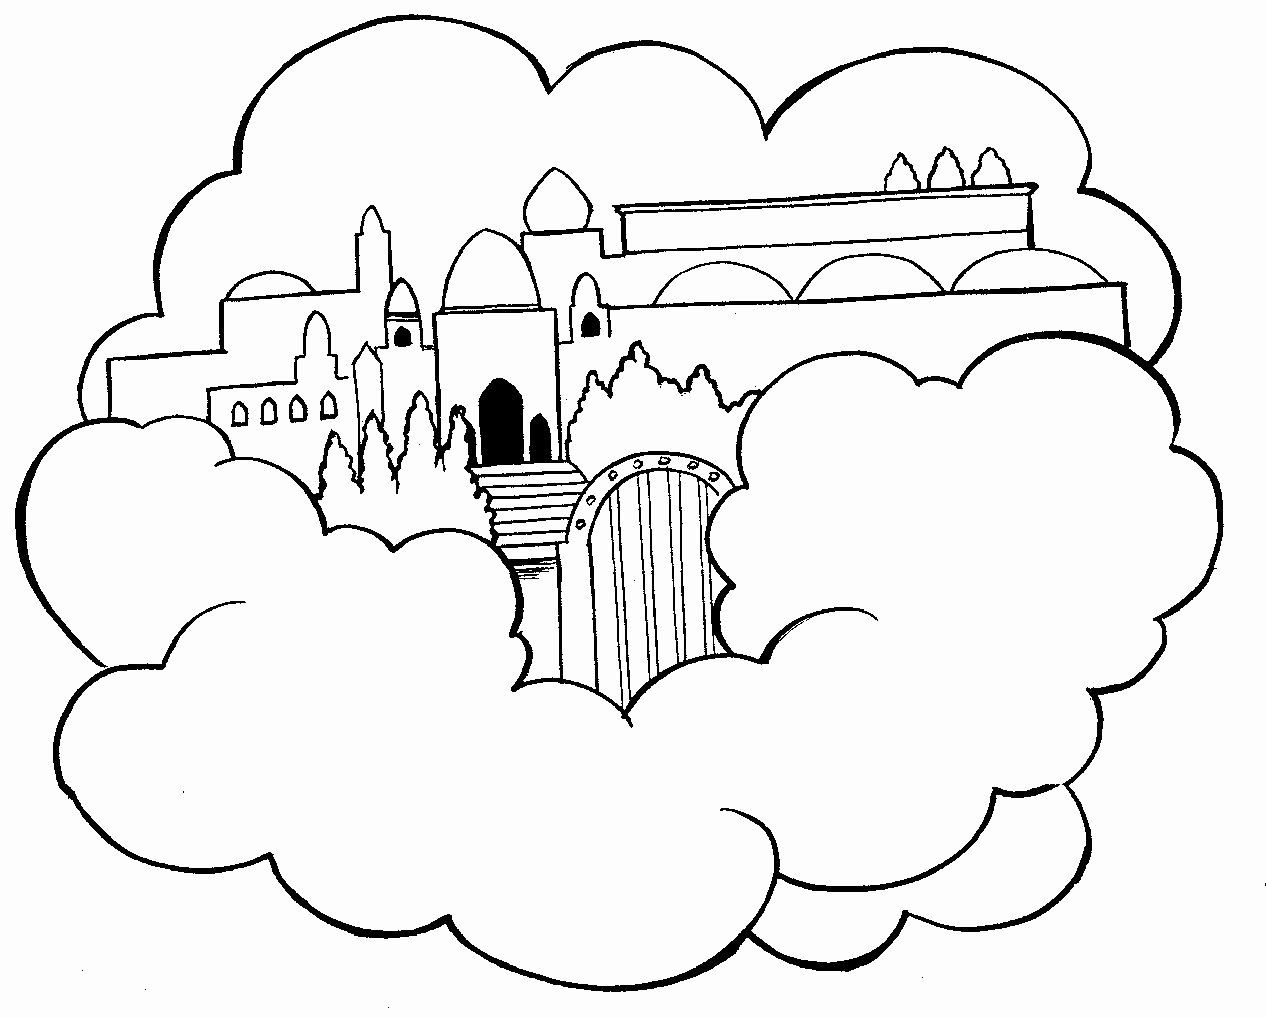 Printable Coloring Pages Of Heaven Luxury Heaven Coloring Pages Sunday School Coloring Pages Coloring Pages Bible Coloring Pages